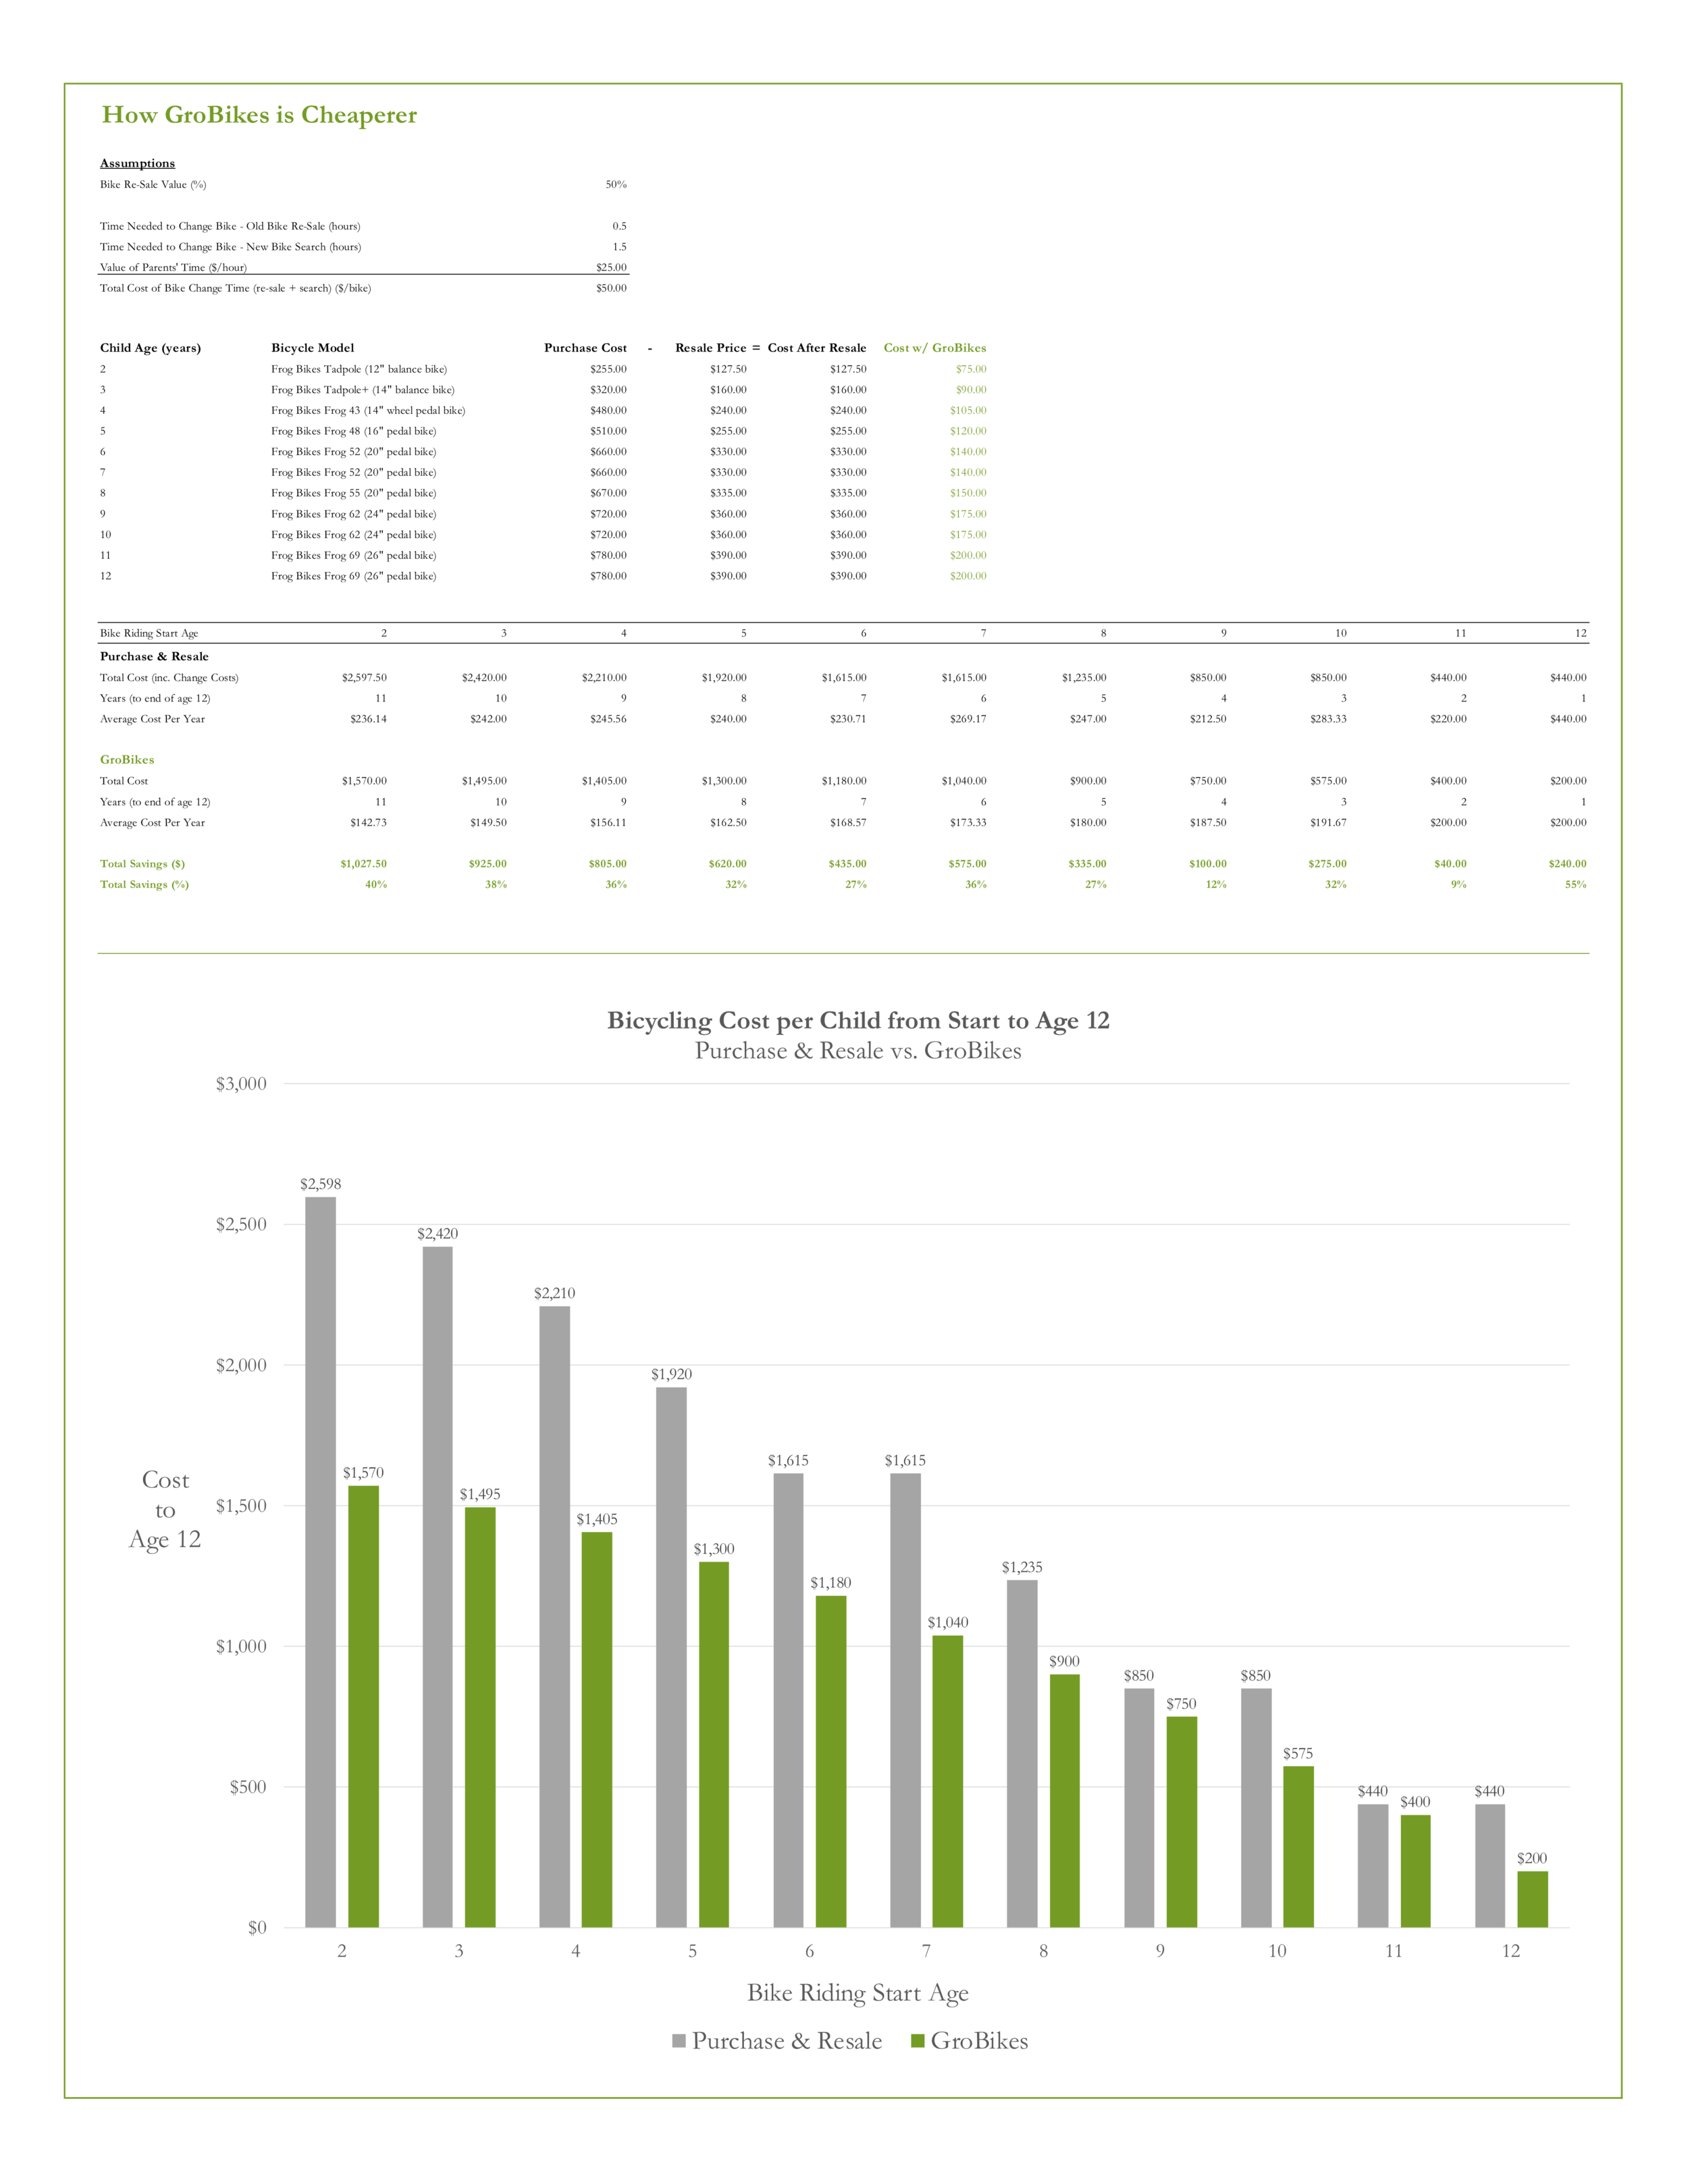 How GroBikes is Cheaperer v2 (2019 pricing).png